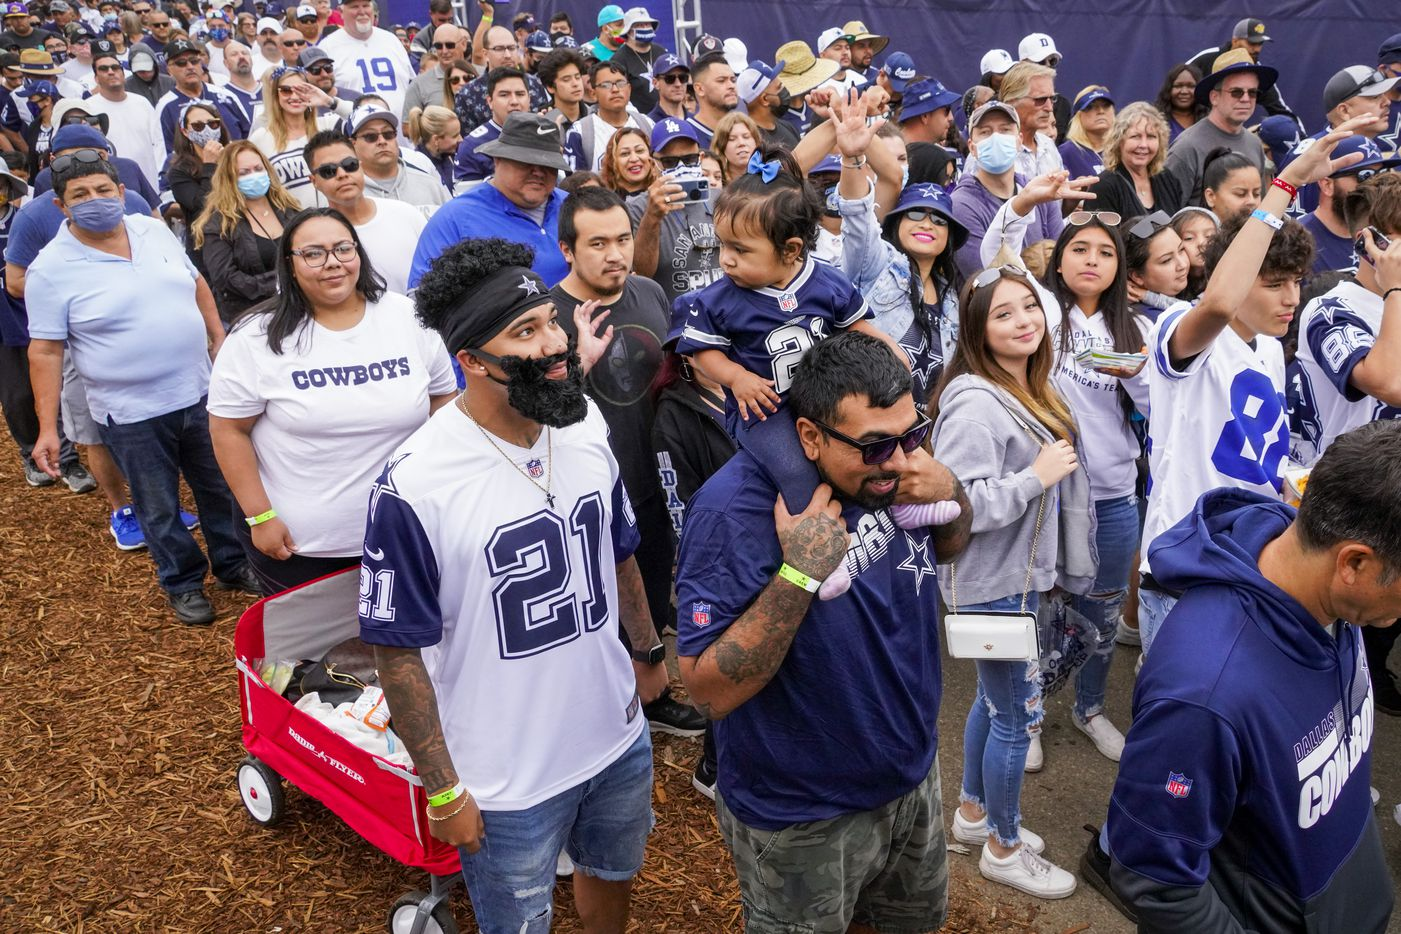 Fans enter the facility as the gates open for the Dallas Cowboys opening ceremonies before a practice at training camp on Saturday, July 24, 2021, in Oxnard, Calif.